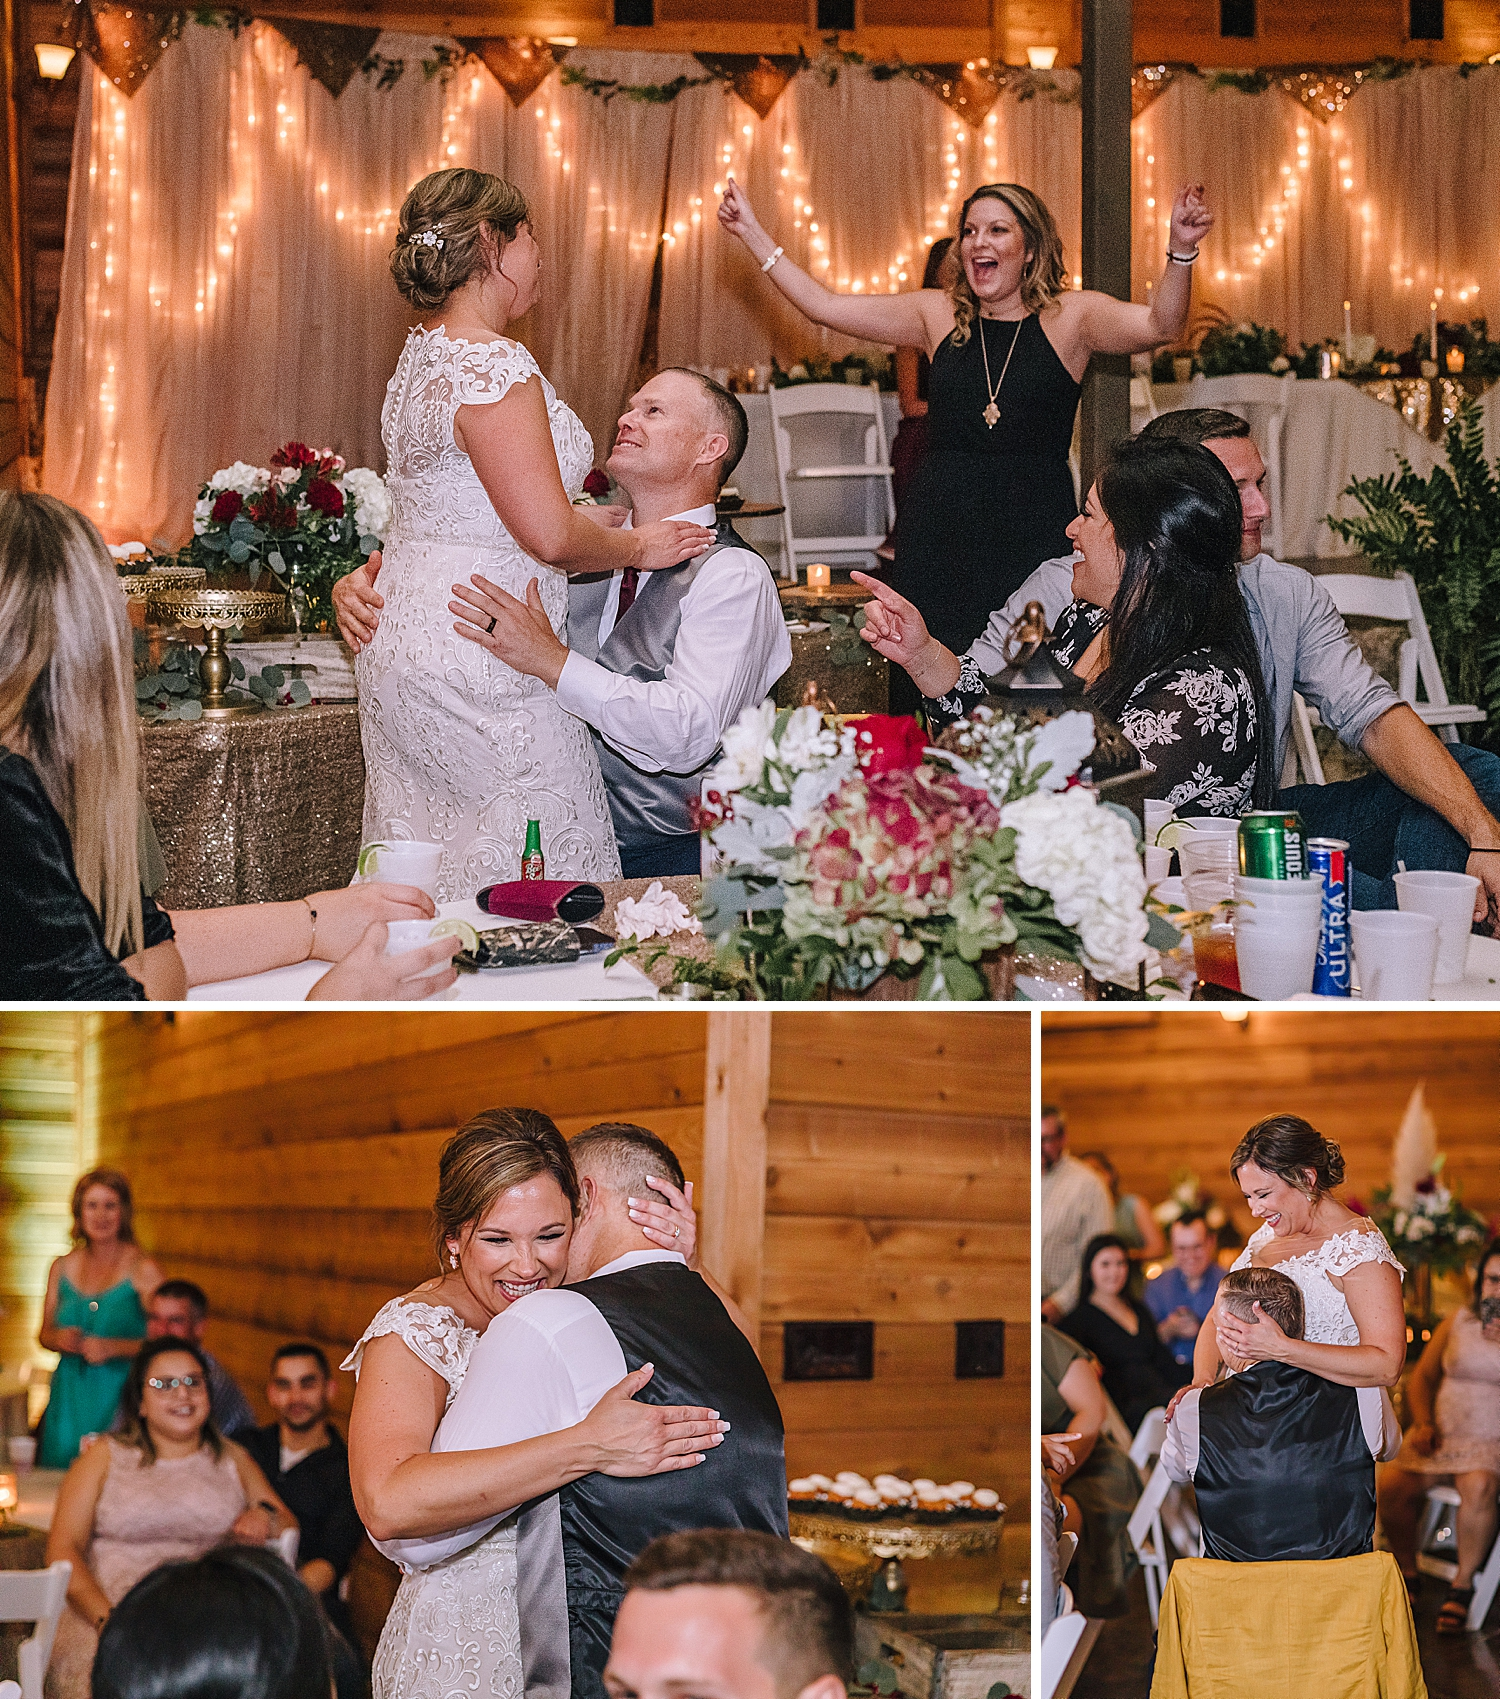 Geronimo-Oaks-Wedding-Venue-Seguin-Texas-Elegant-Navy-Burgundy-Wedding-Carly-Barton-Photography_0080.jpg